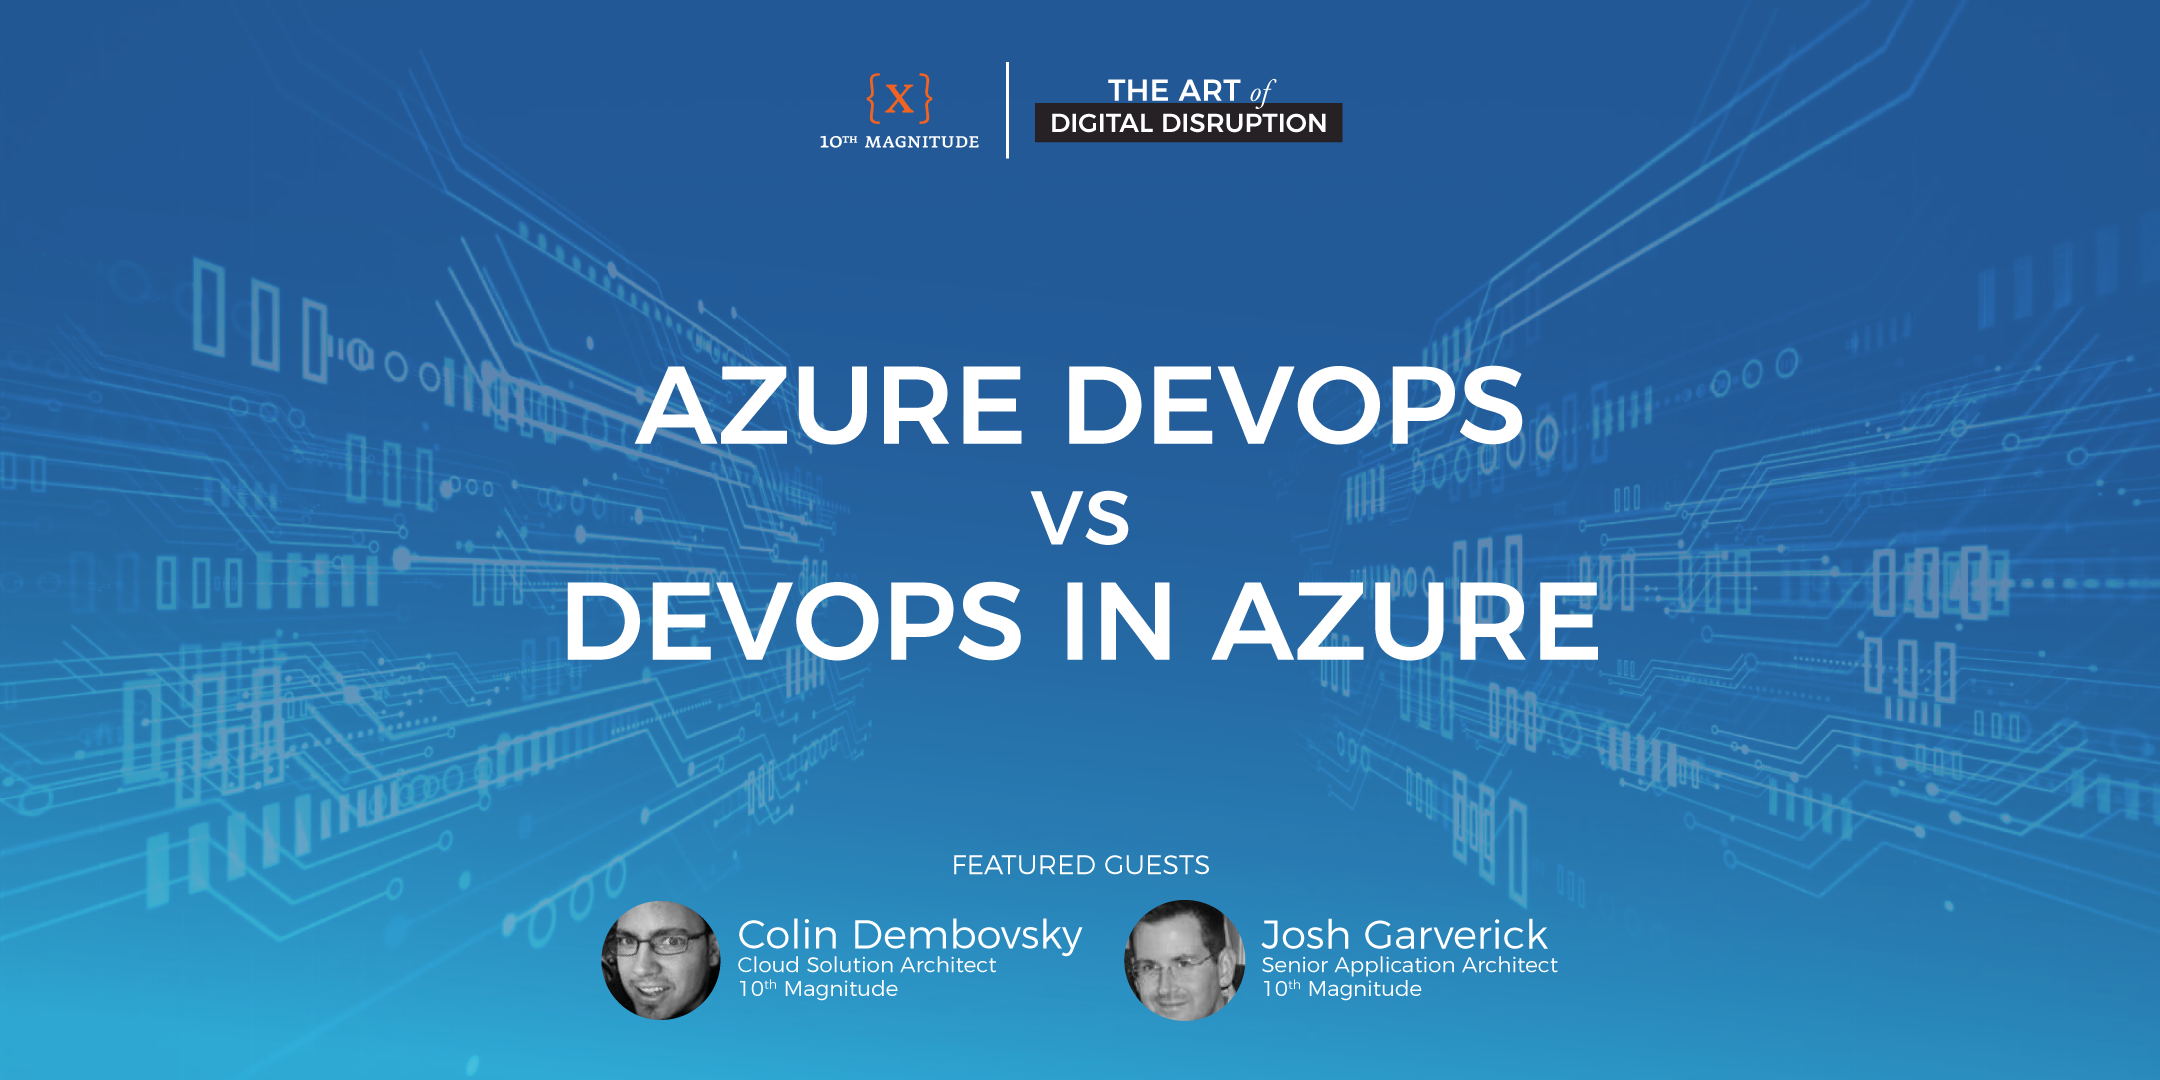 Azure DevOps vs. DevOps in Azure